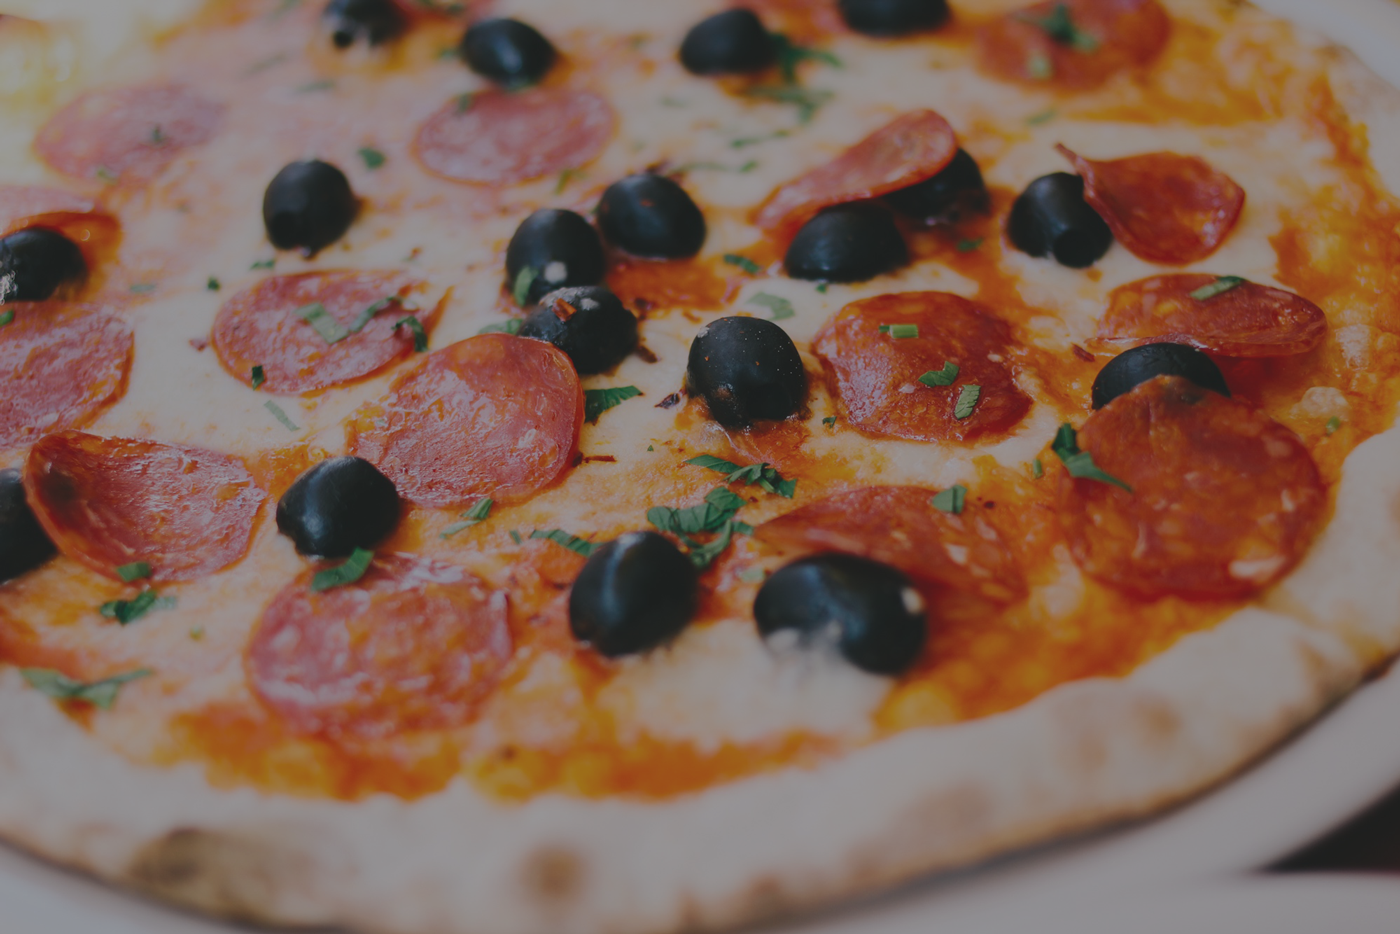 free delivery - ( within 3 miles of Zane's Bistro )